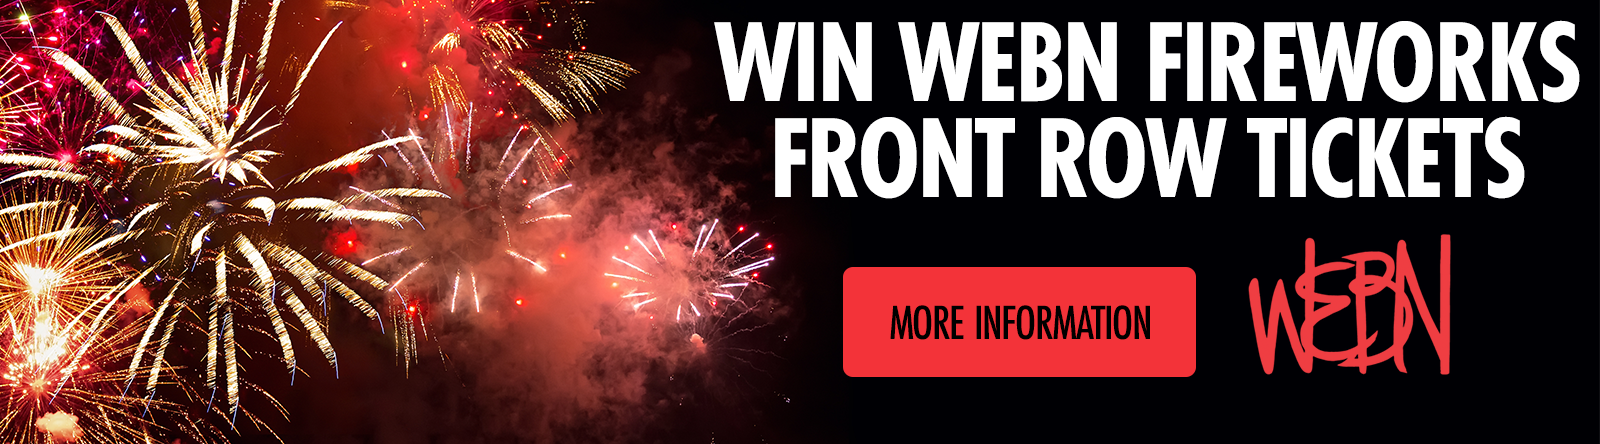 Win Tickets to the WEBN Fireworks